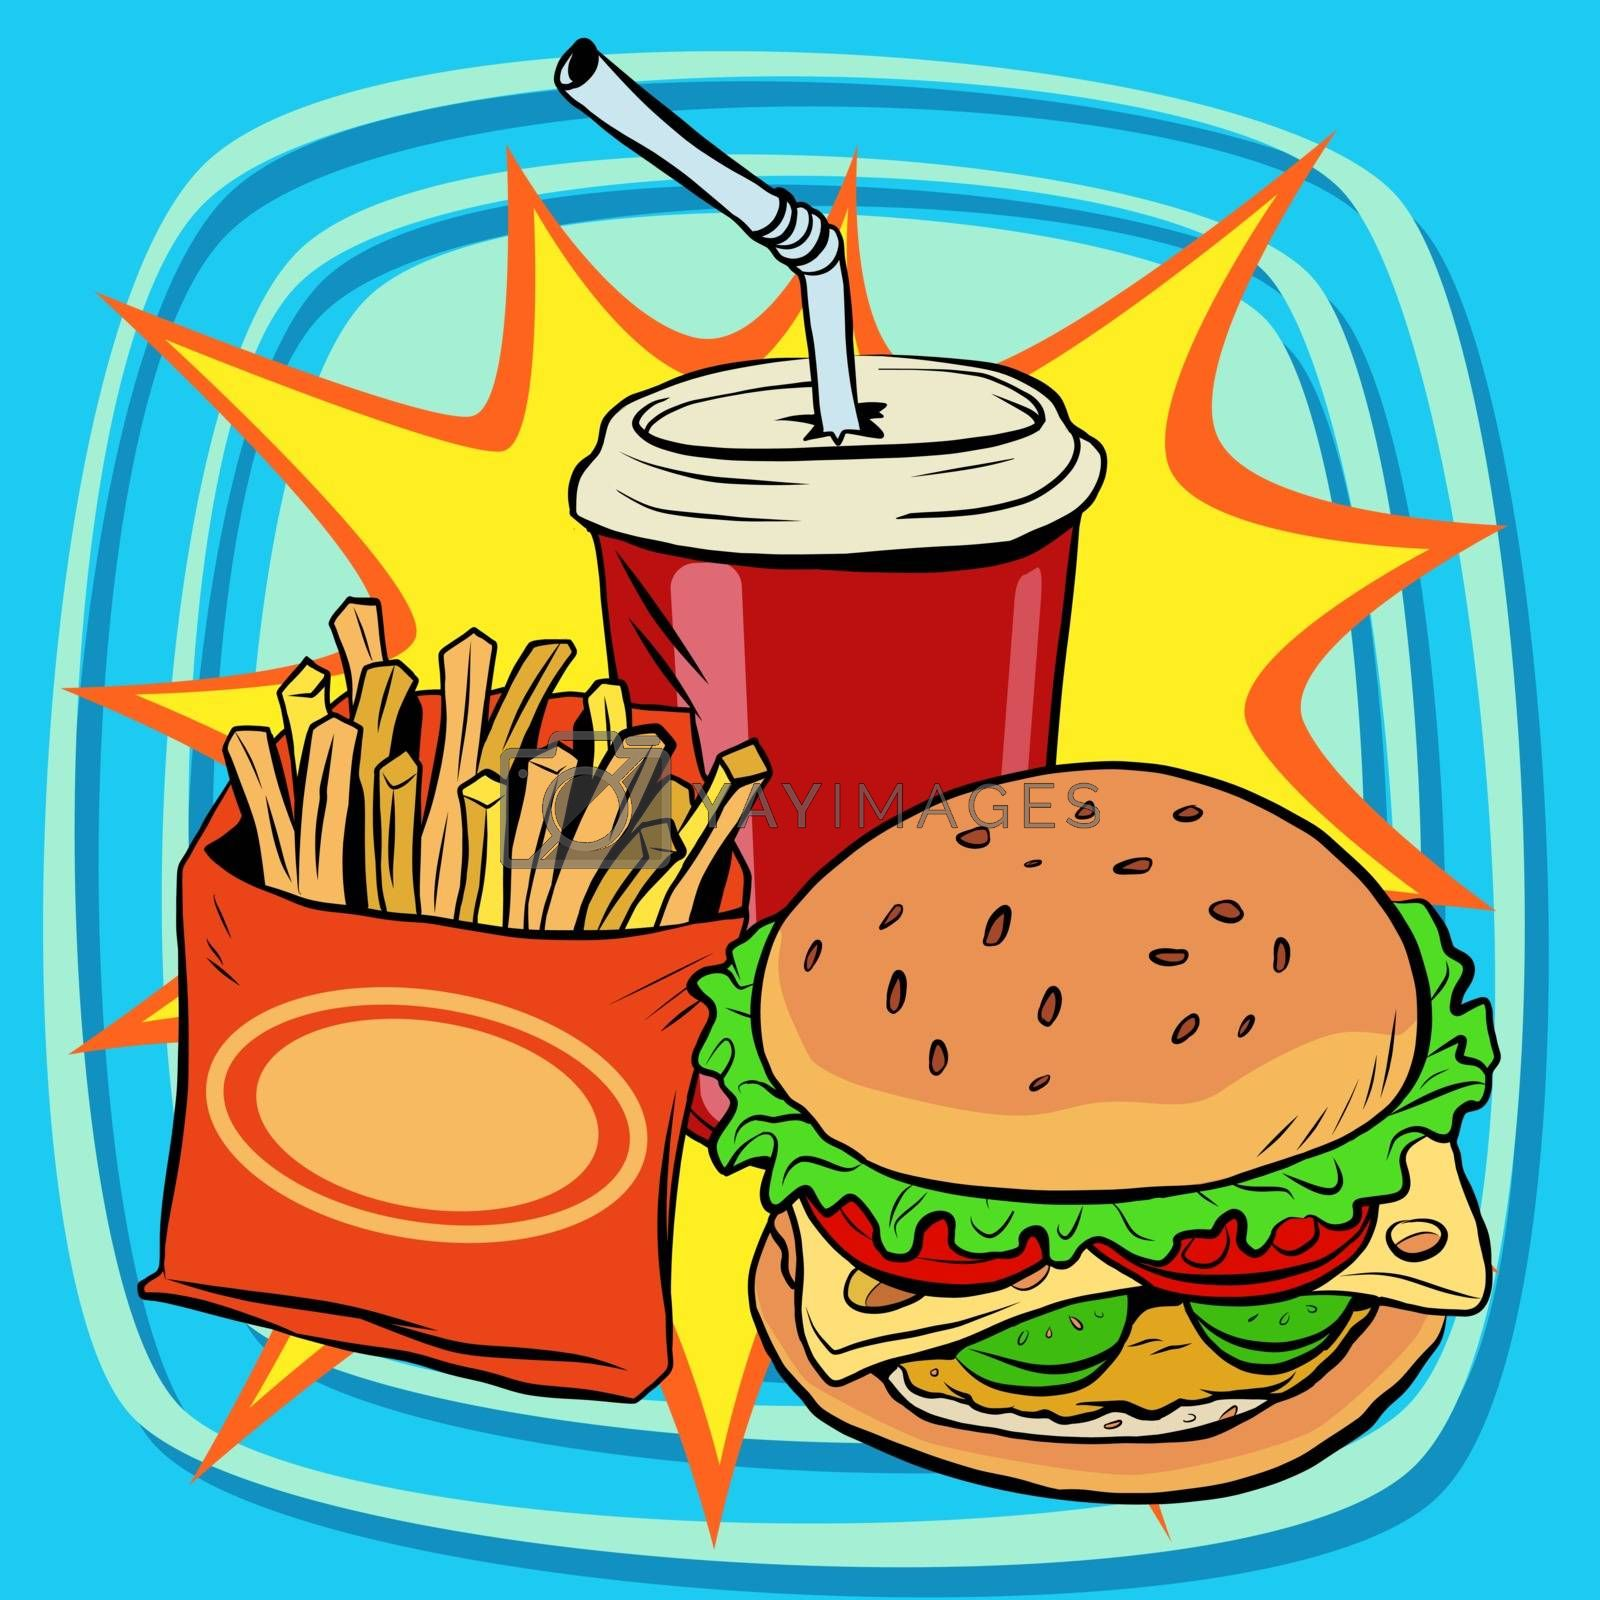 fast food fries burger drink cola pop art retro vector. Street restaurant. Nourishing food. Retro food